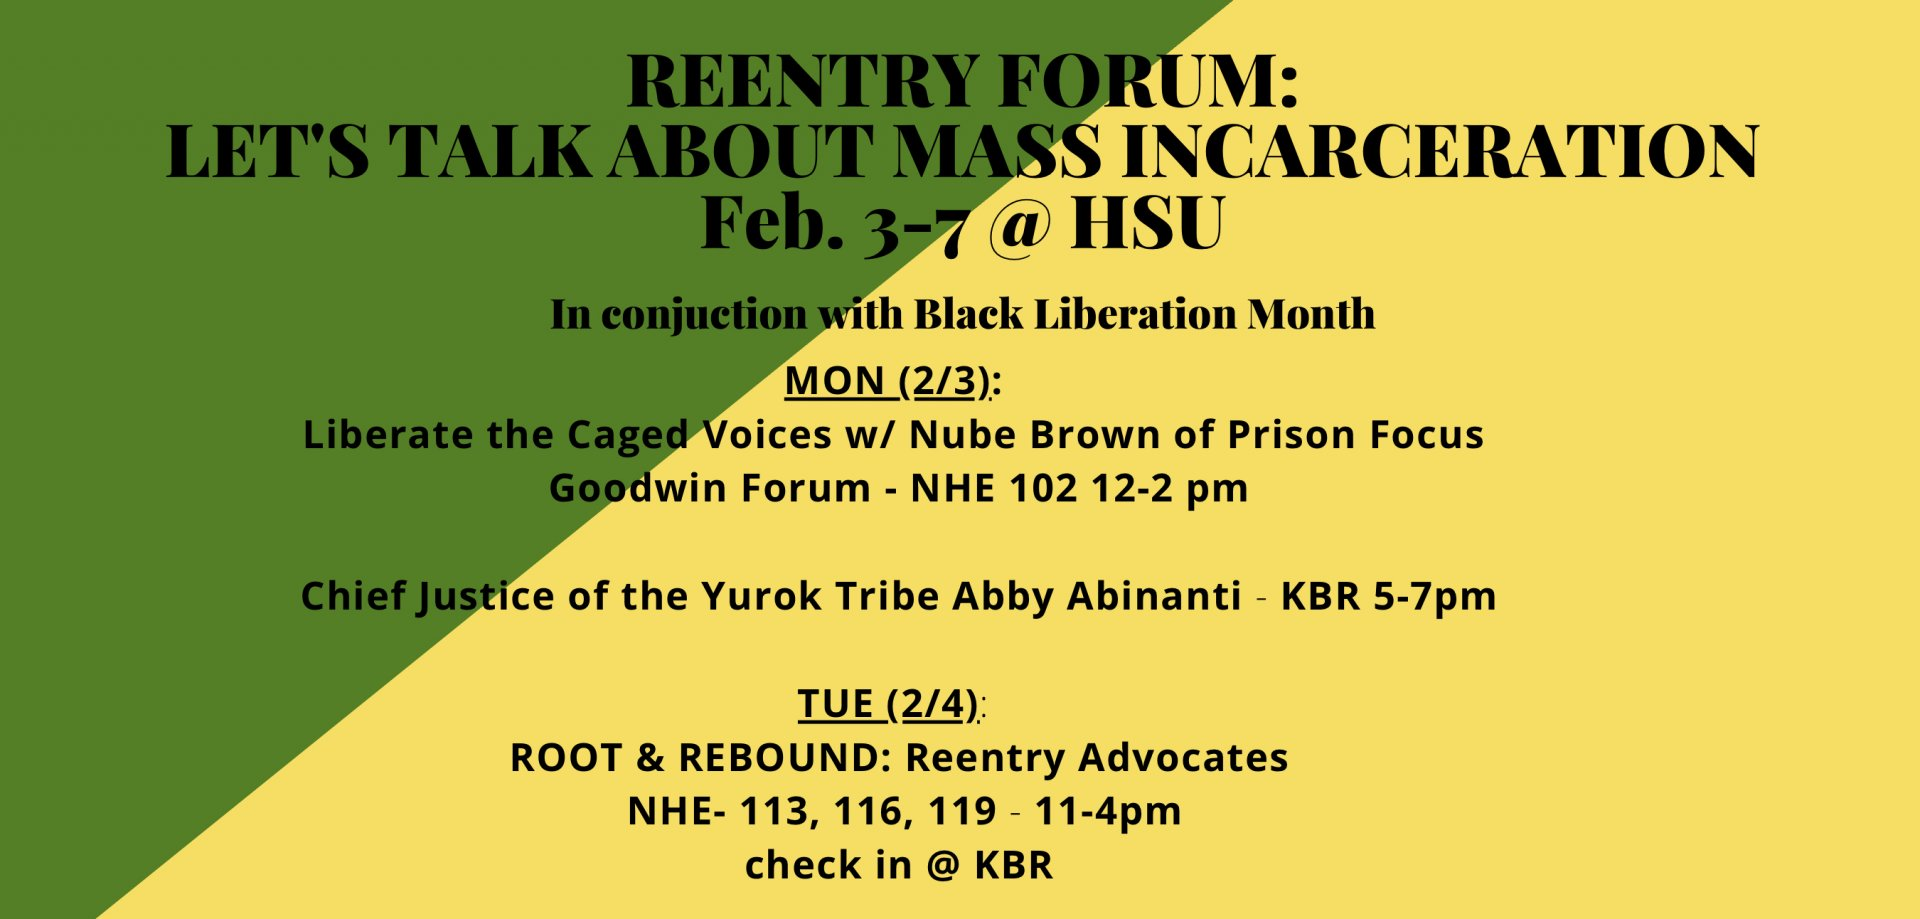 Crop of the flyer from the HSU Formerly Incarcerated Students Club